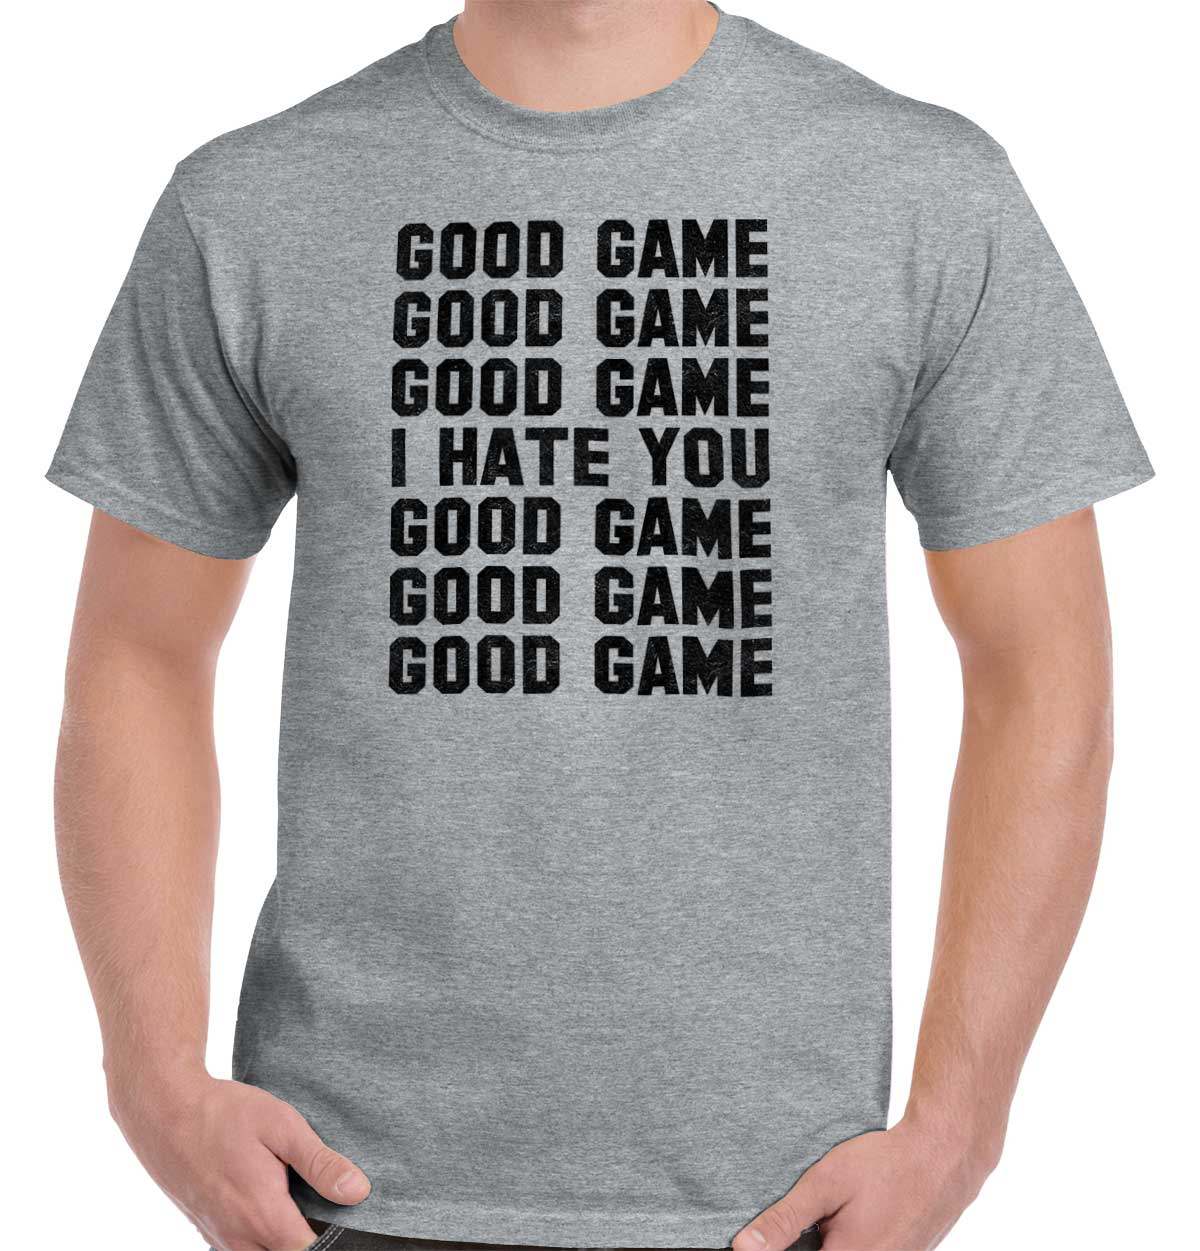 Brisco Brands Good Game I Hate You Funny Shirt Cool Gift Cute